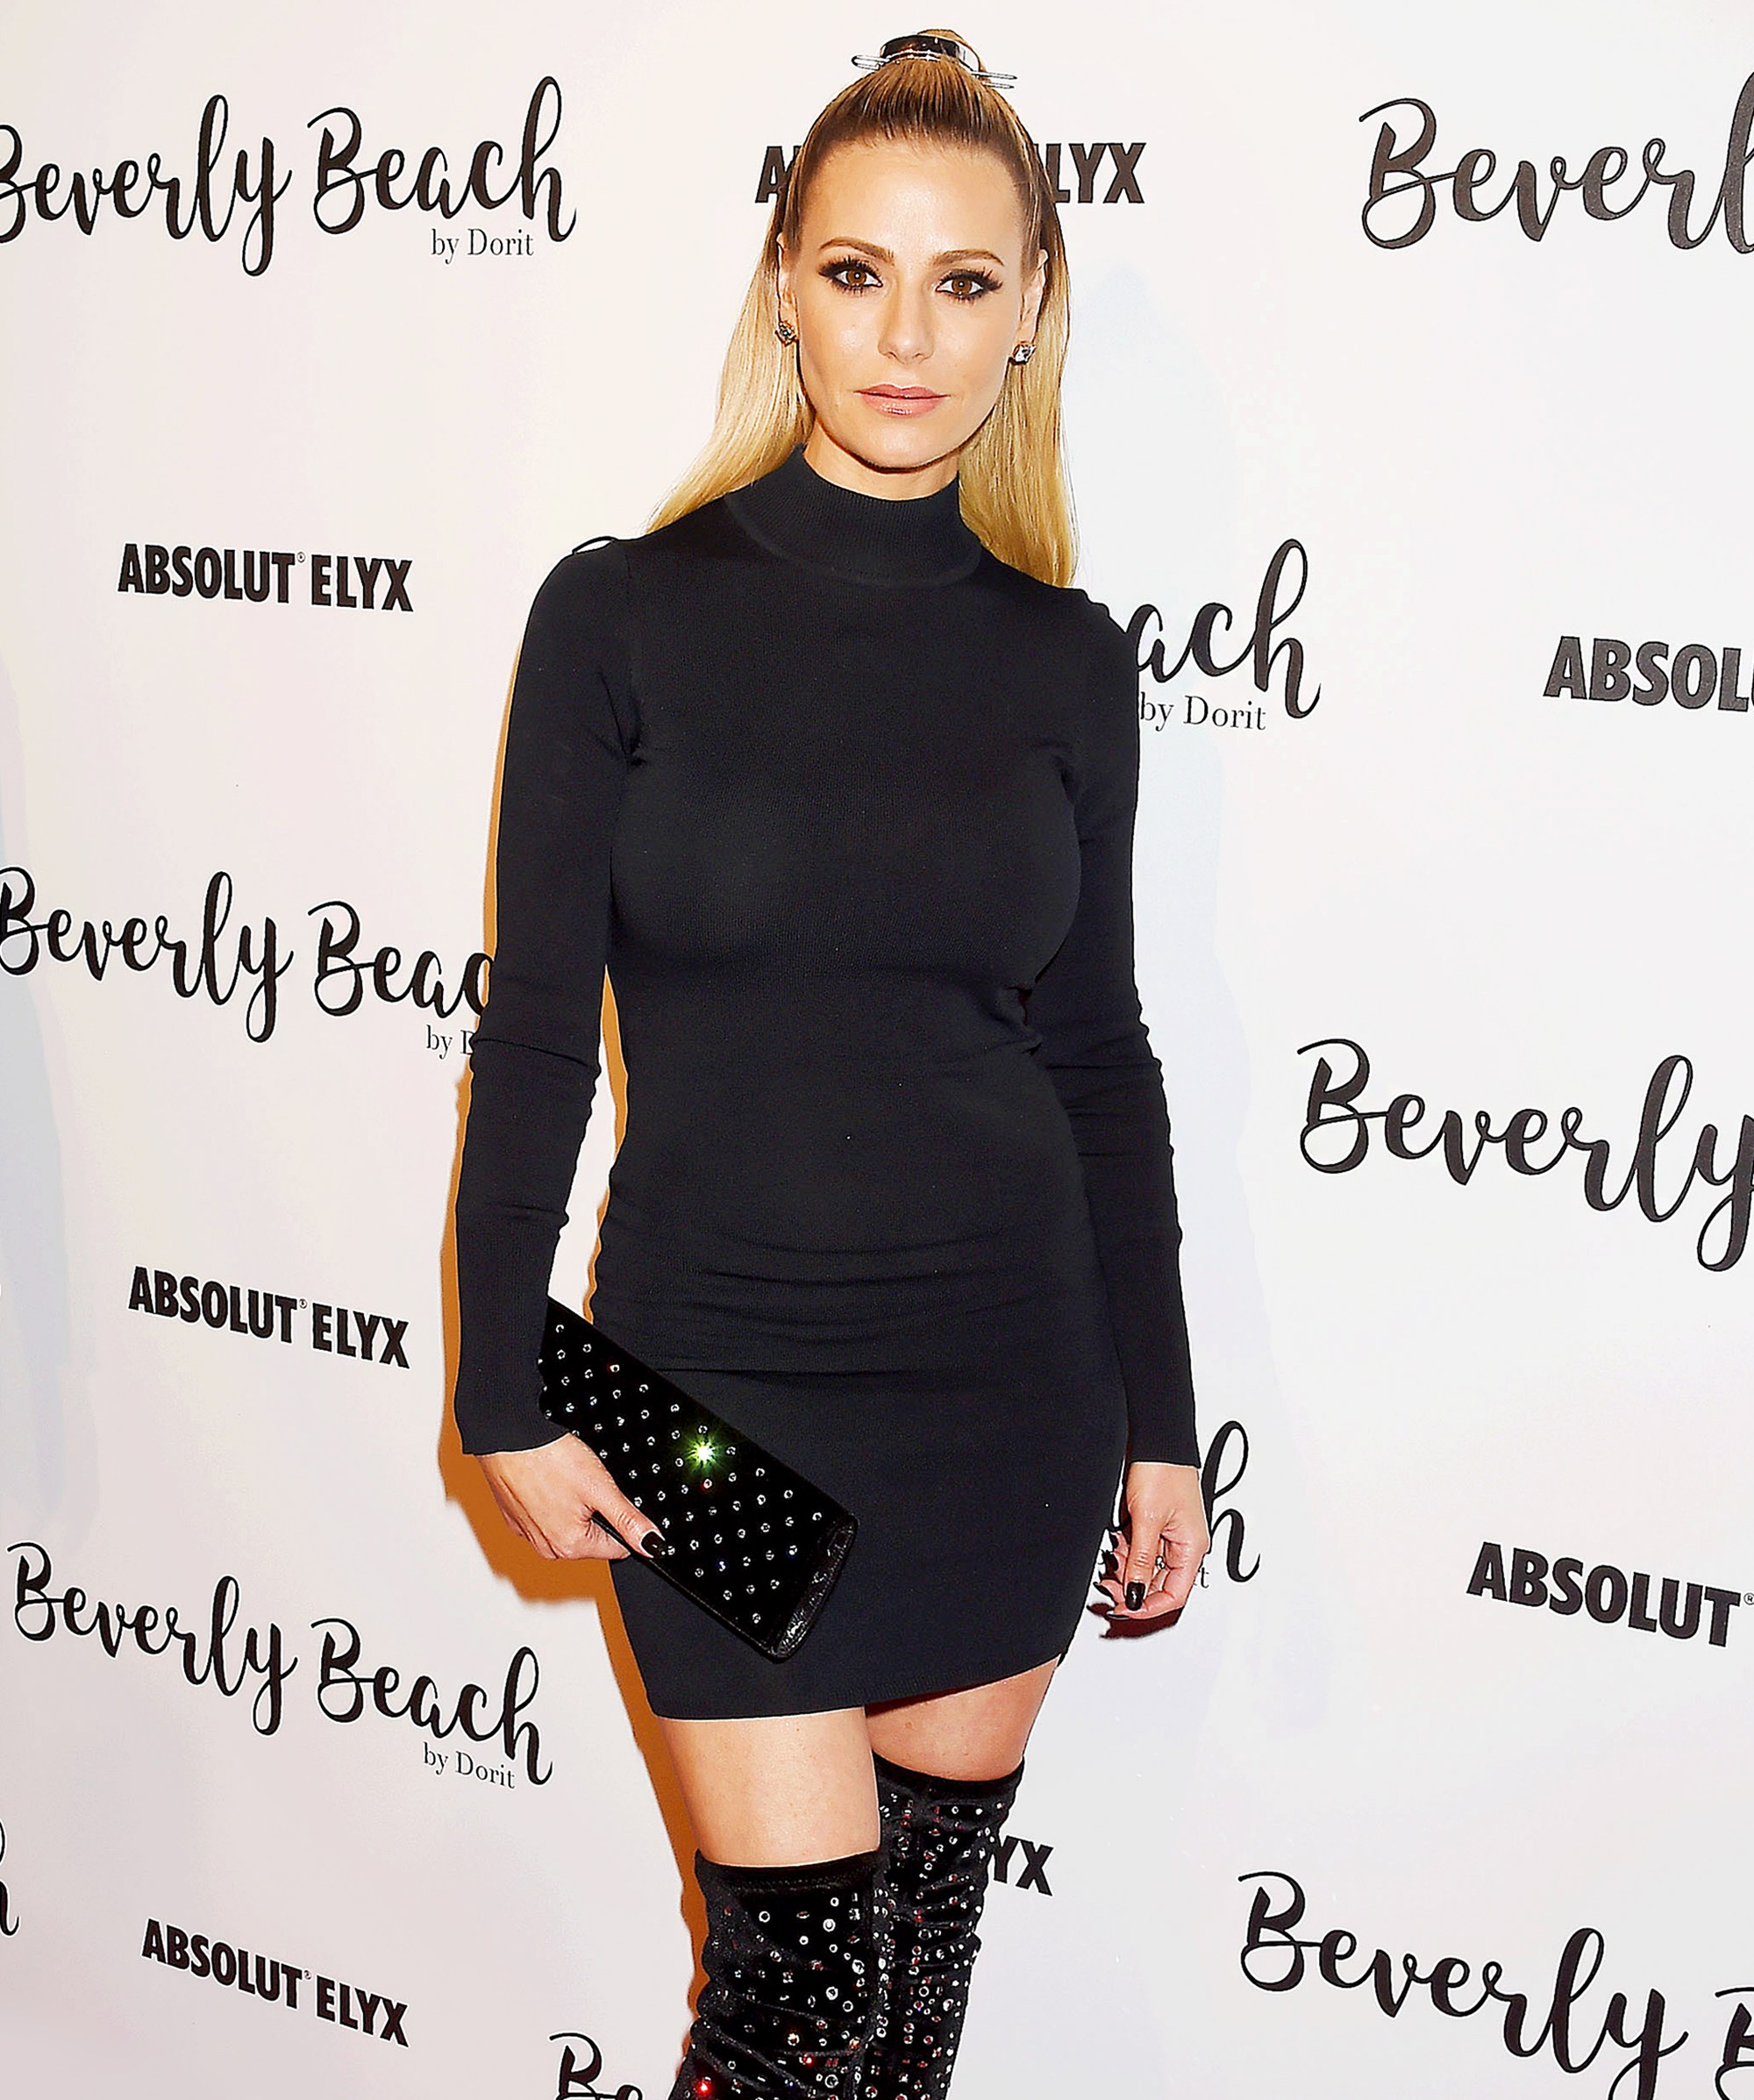 Dorit Kemsley attends the Dorit Kemsley Hosts Preview Event For Beverly Beach By Dorit at the Trunk Club on October 21, 2017 in Culver City, California.